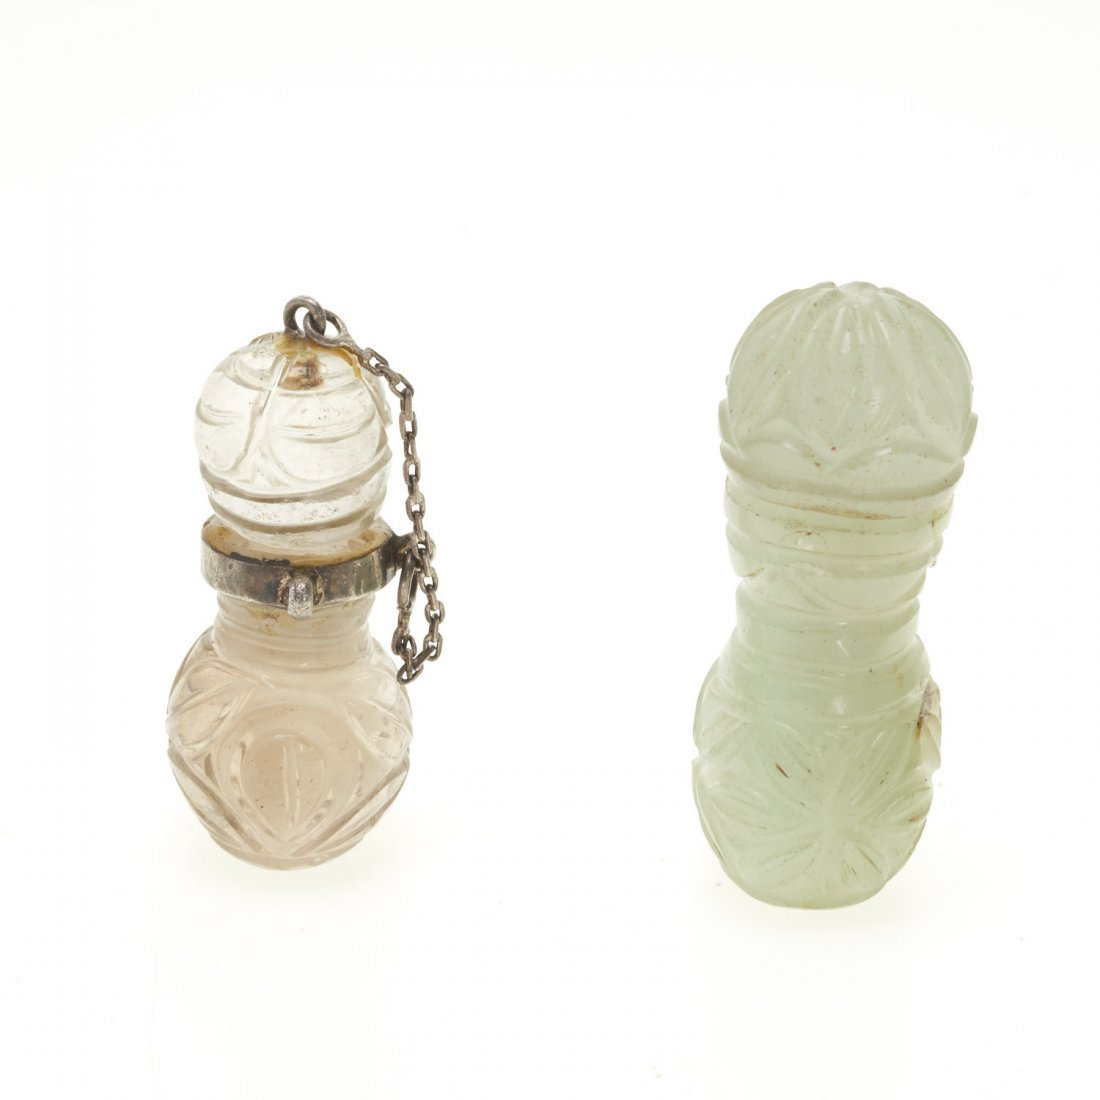 (2) Antique Chinese jade and rock crystal perfumes - 3